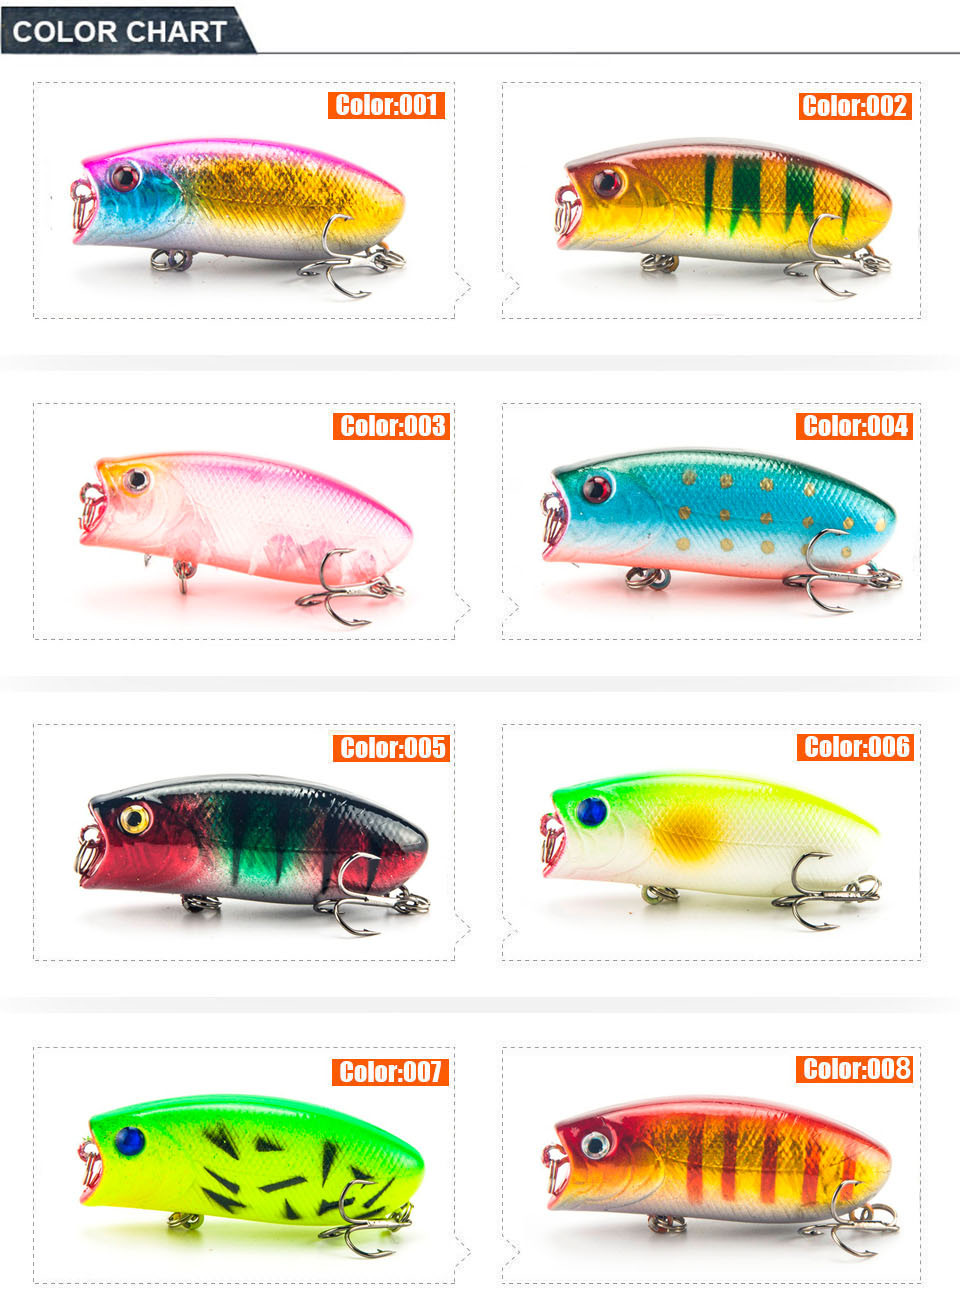 1pcs 11g55cm poppers fishing lure top water pesca fish lures 1 lure nvjuhfo Gallery